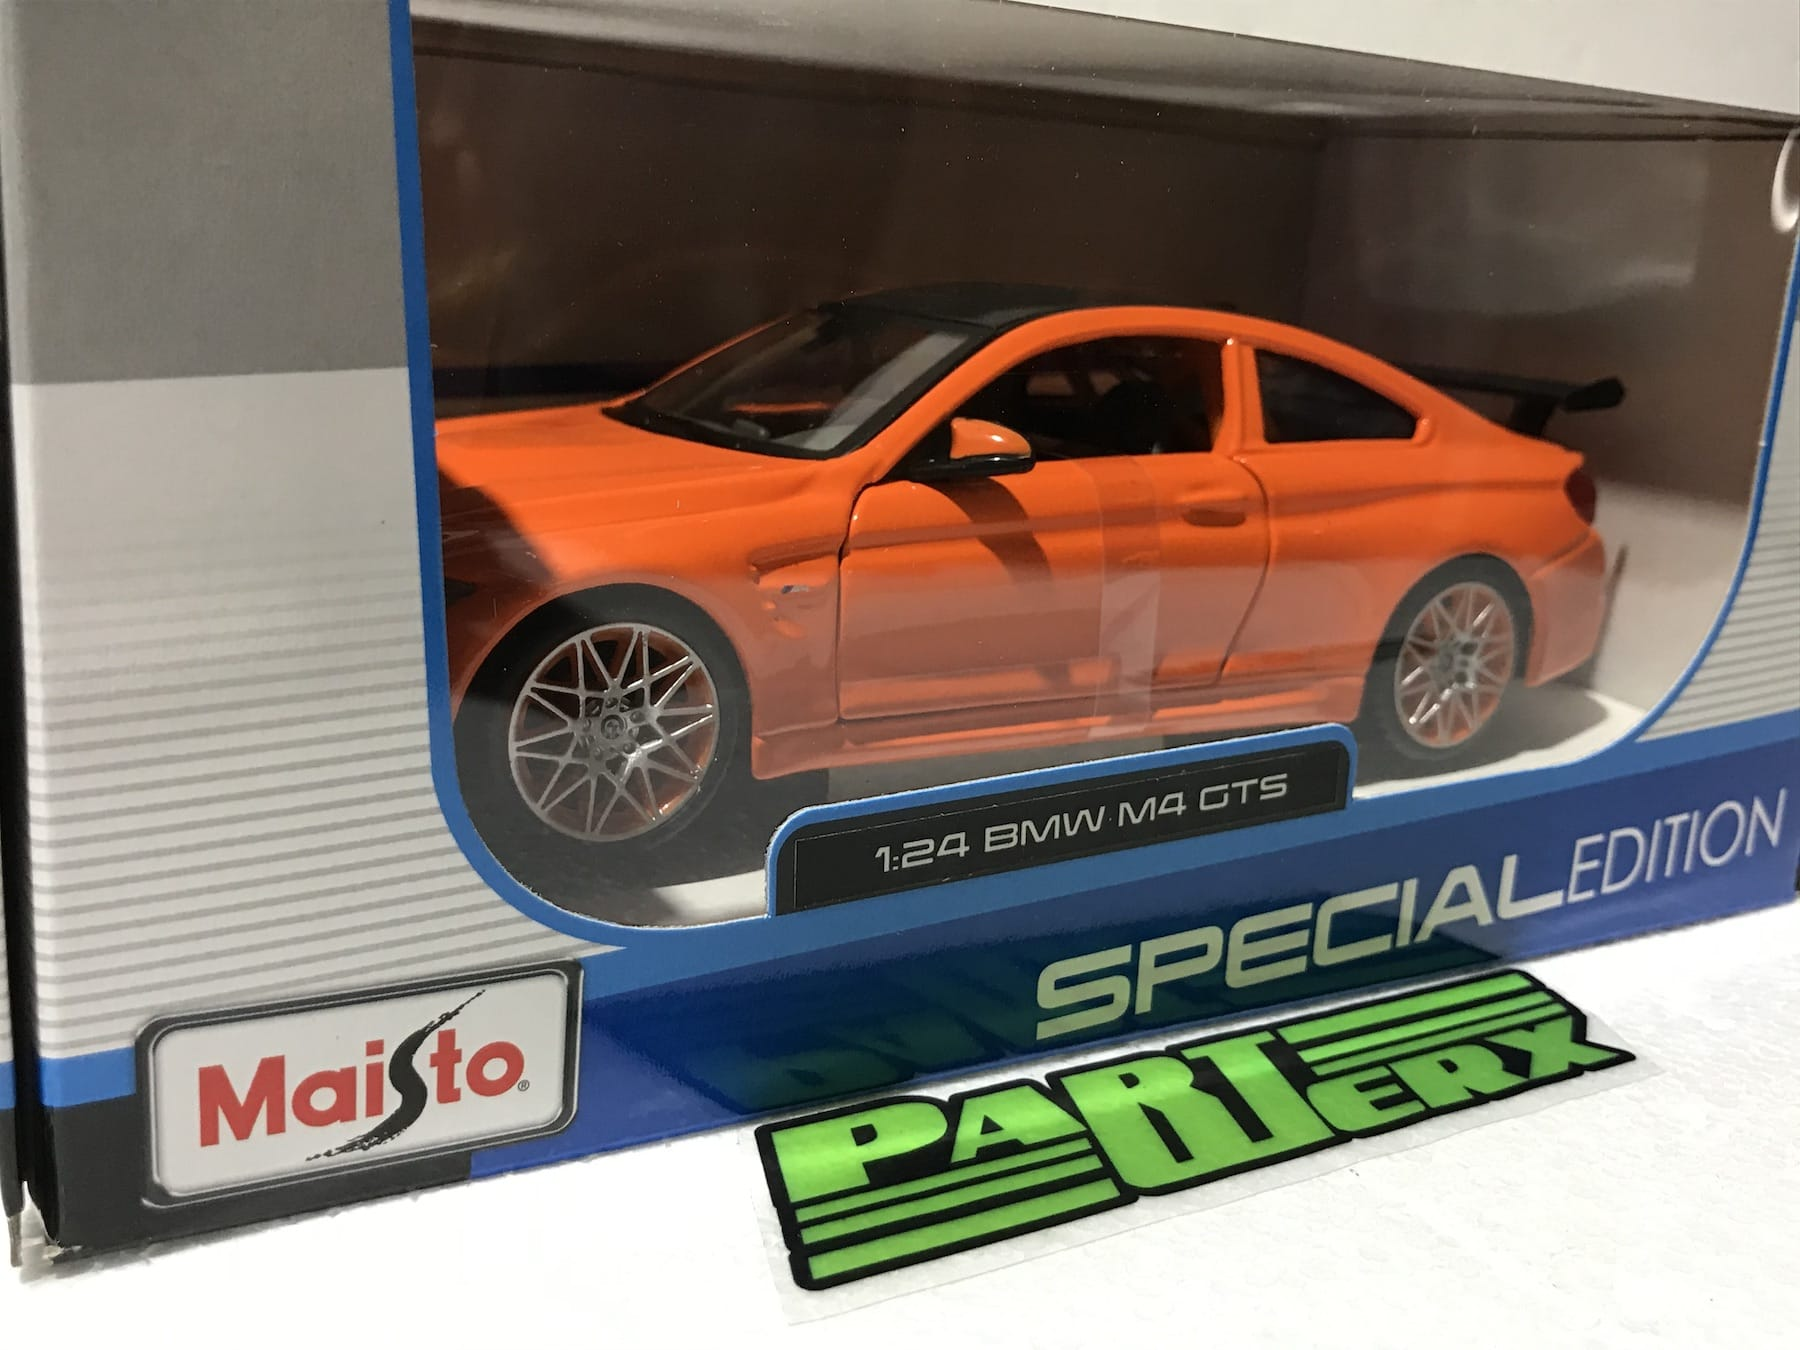 BMW M4 GTS 1:24 Scale Model Toy Childs Kids Enthusiasts Collectors Gift